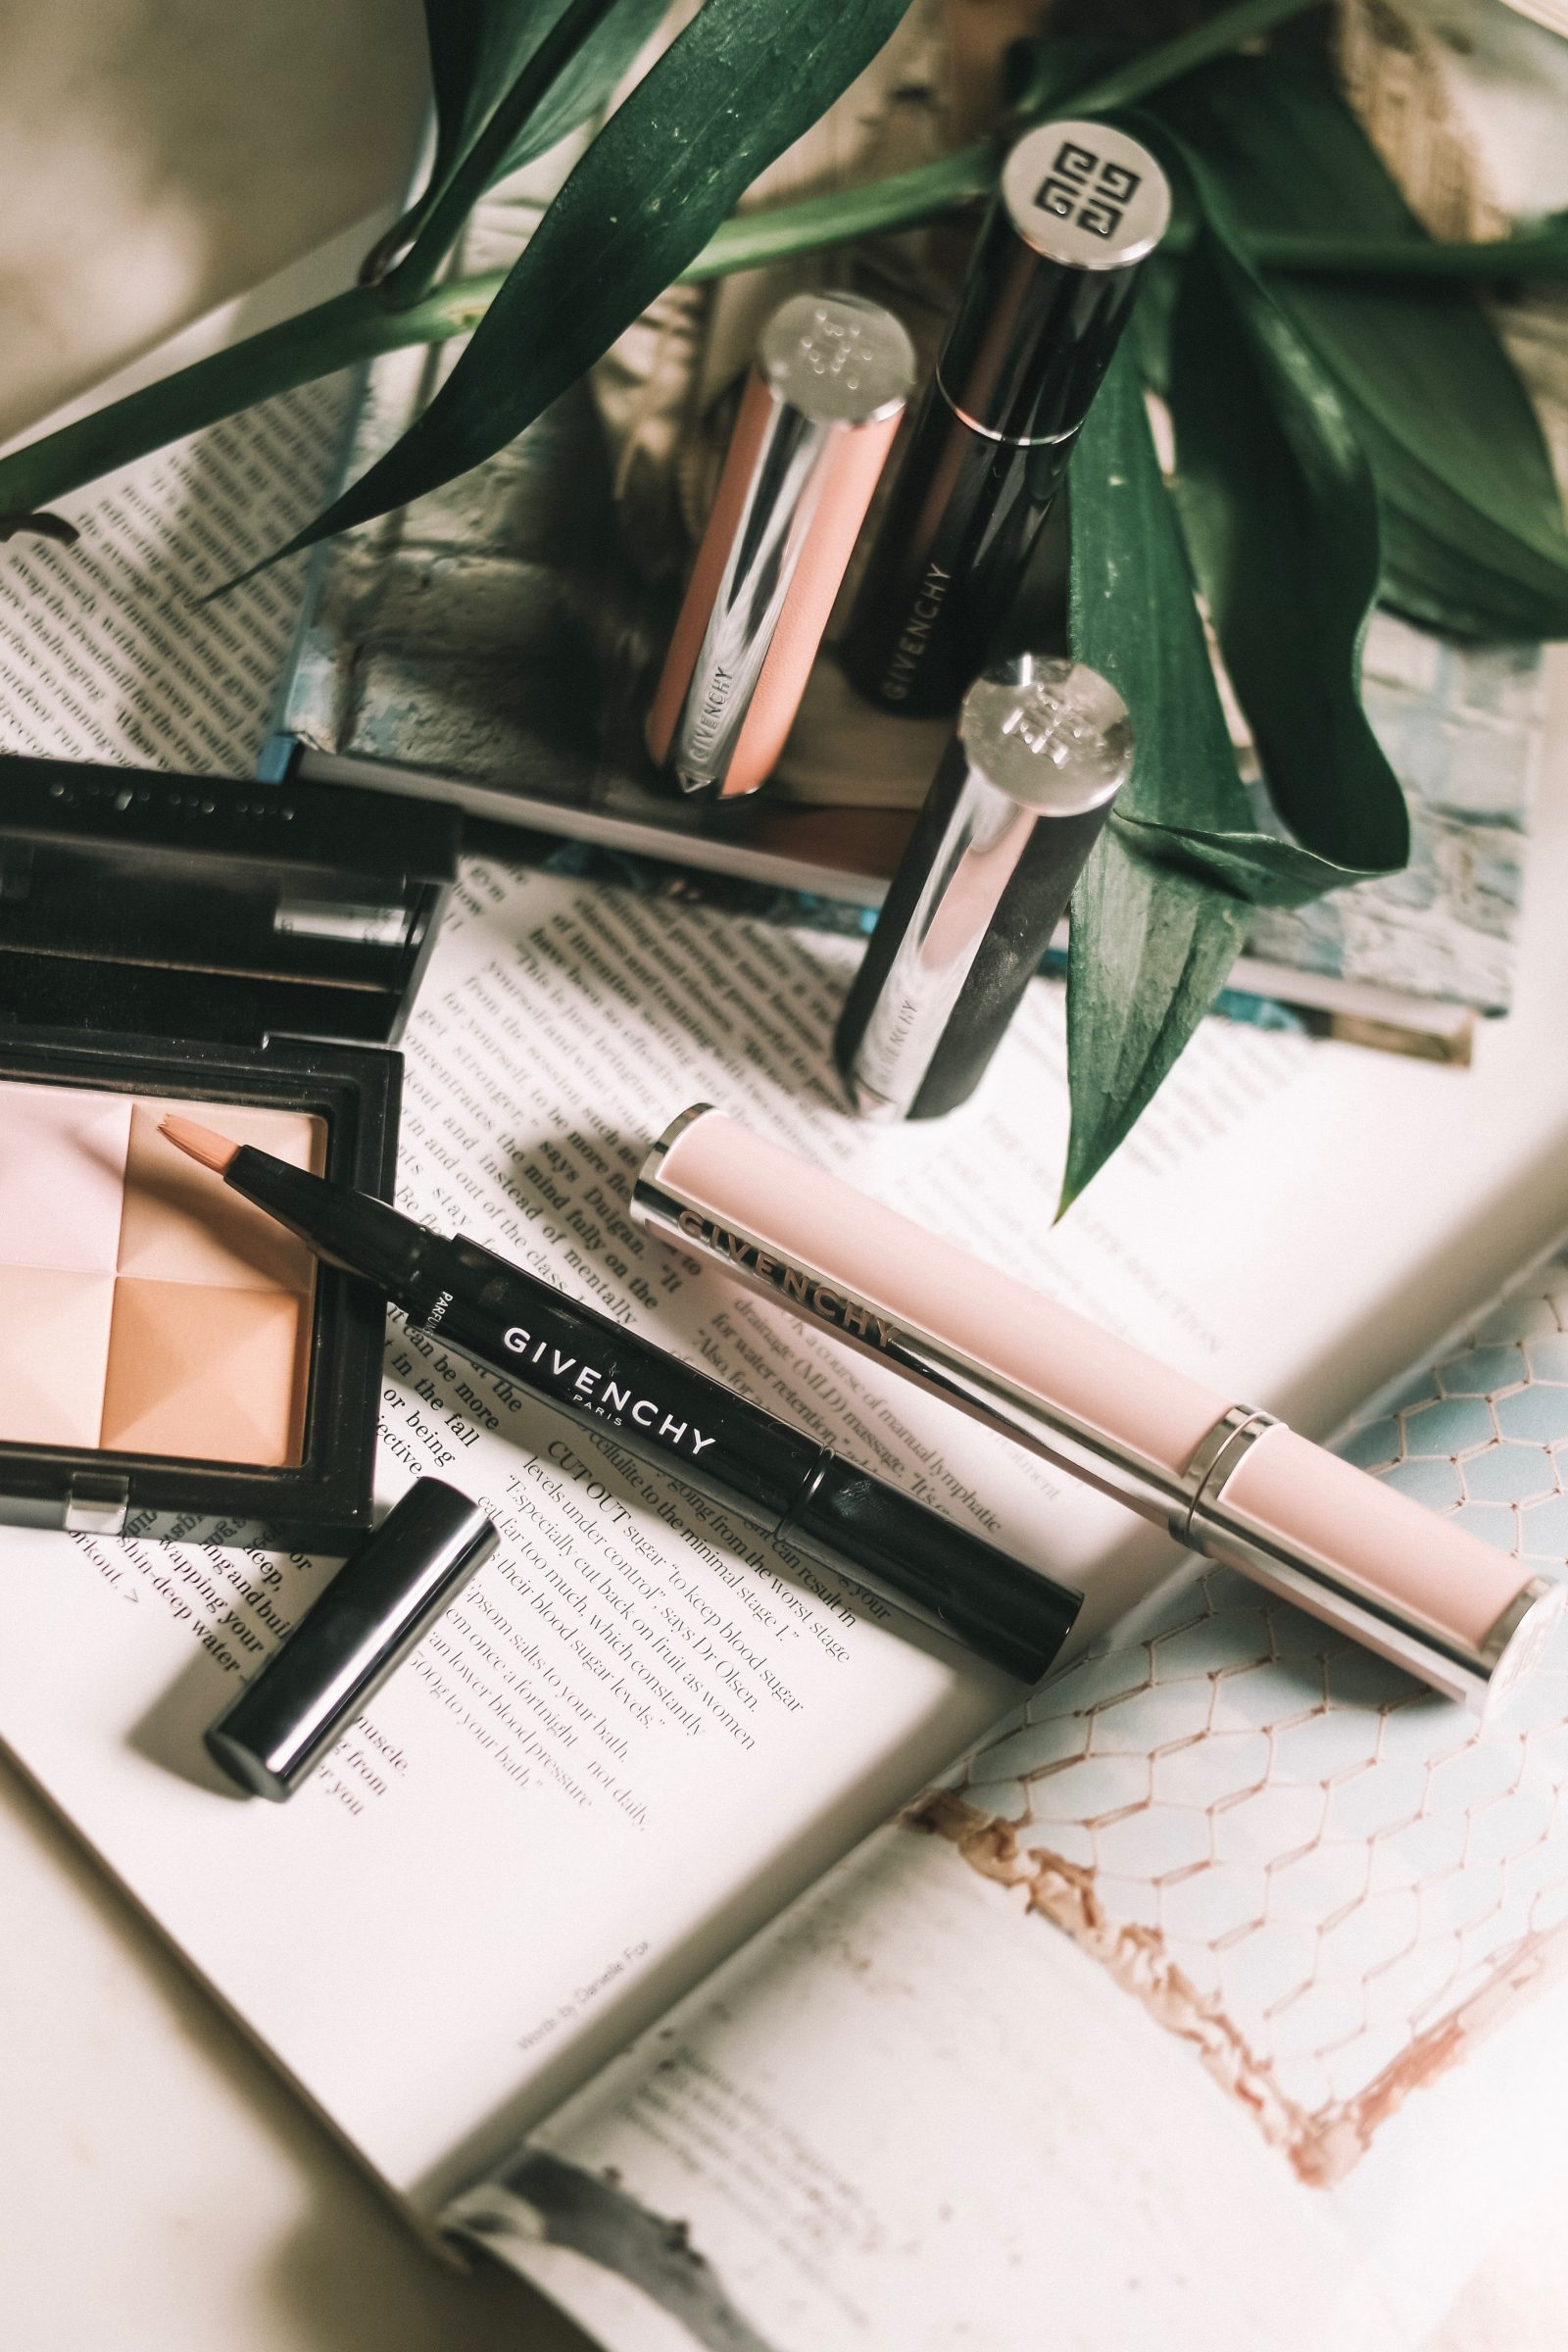 Givenchy Beauty Make Up Collection